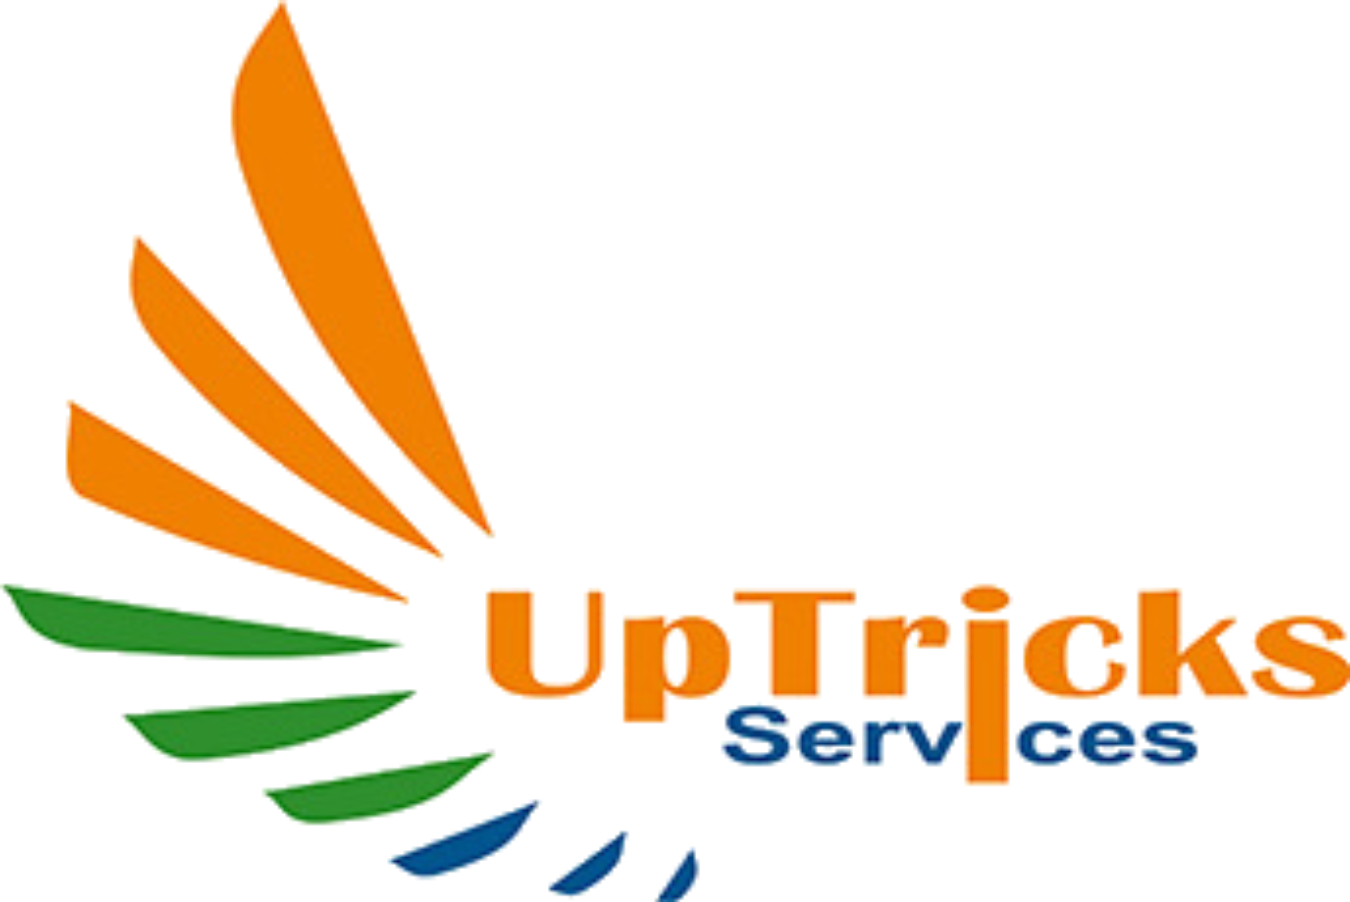 Internship Program - 2019 Tickets by Uptricks Services Private Limited, 22  Jul, 2019, Pune Event